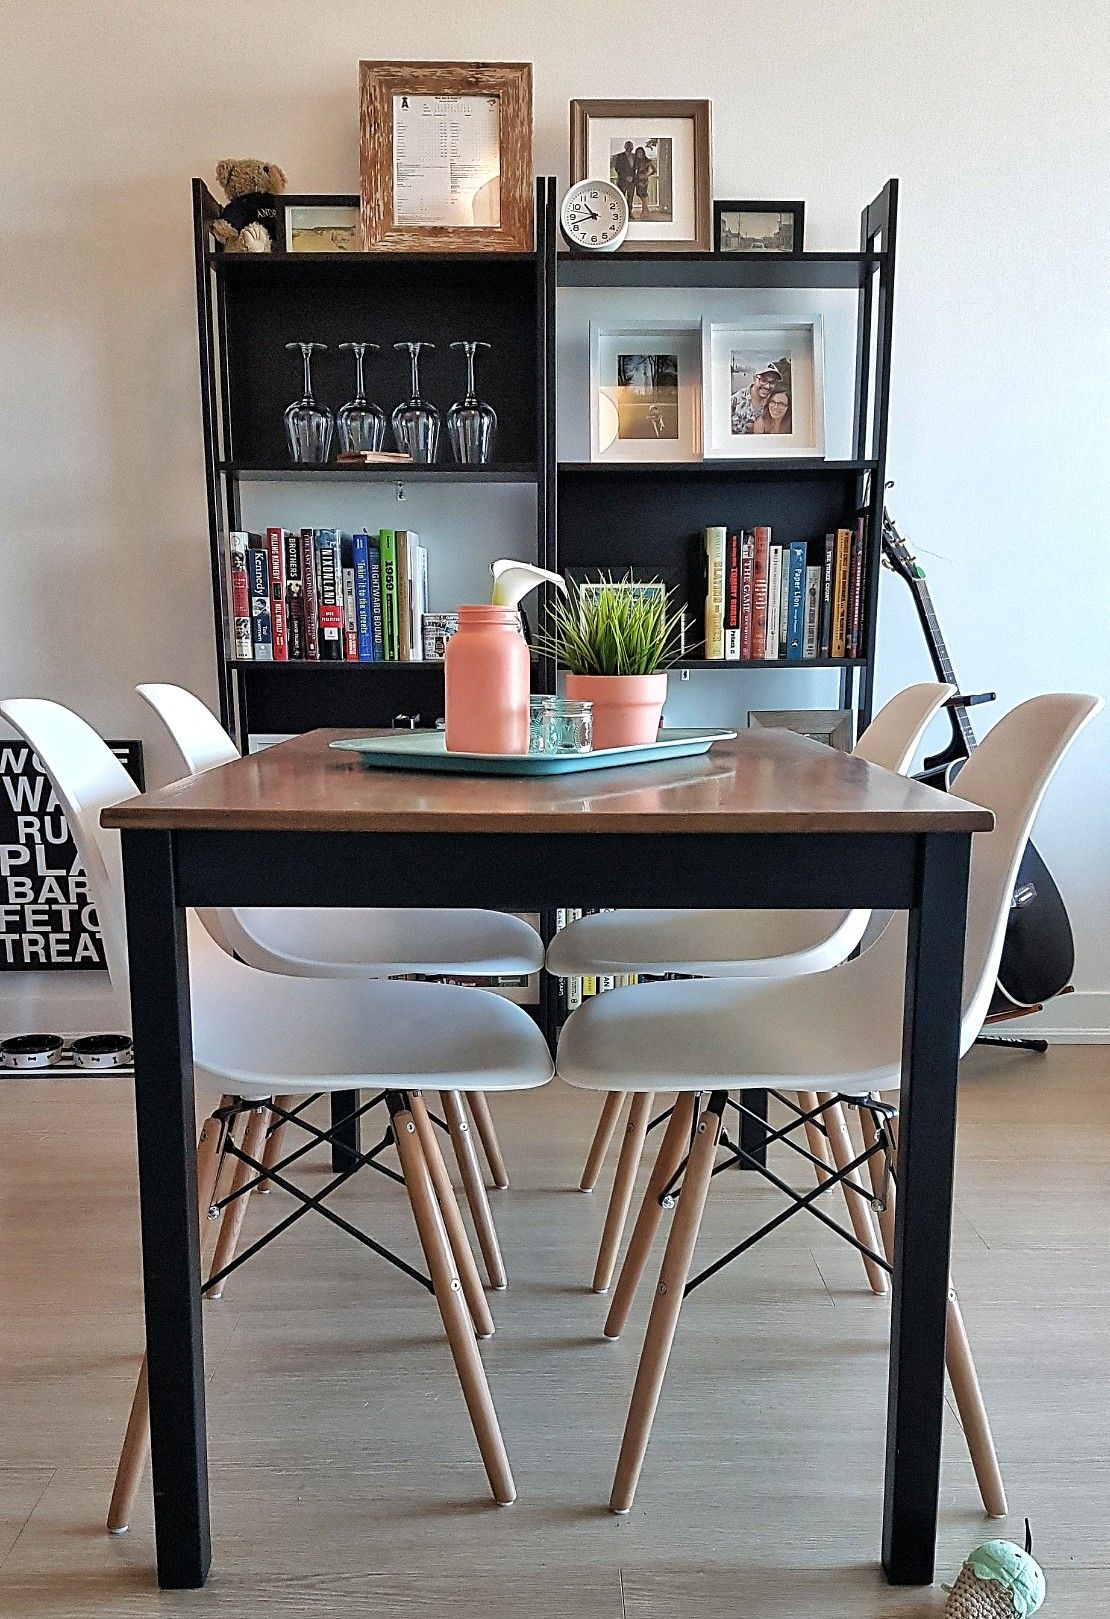 cool ikea ingo table ideas and hacks youll love